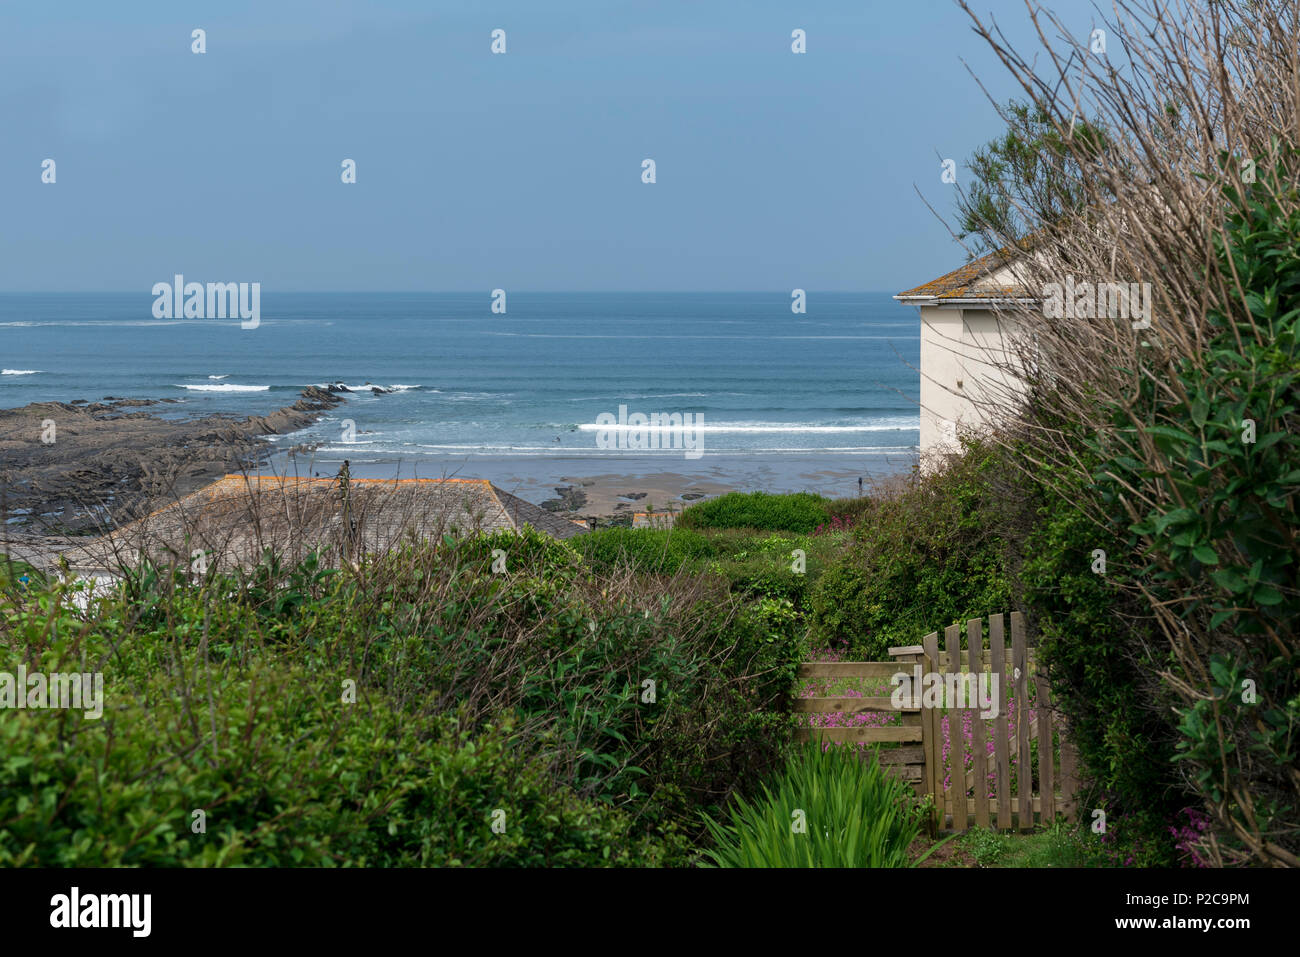 Cottage with a glorious seaview as seen from a section of the south west coast path at Crackington Haven Cornwall. - Stock Image